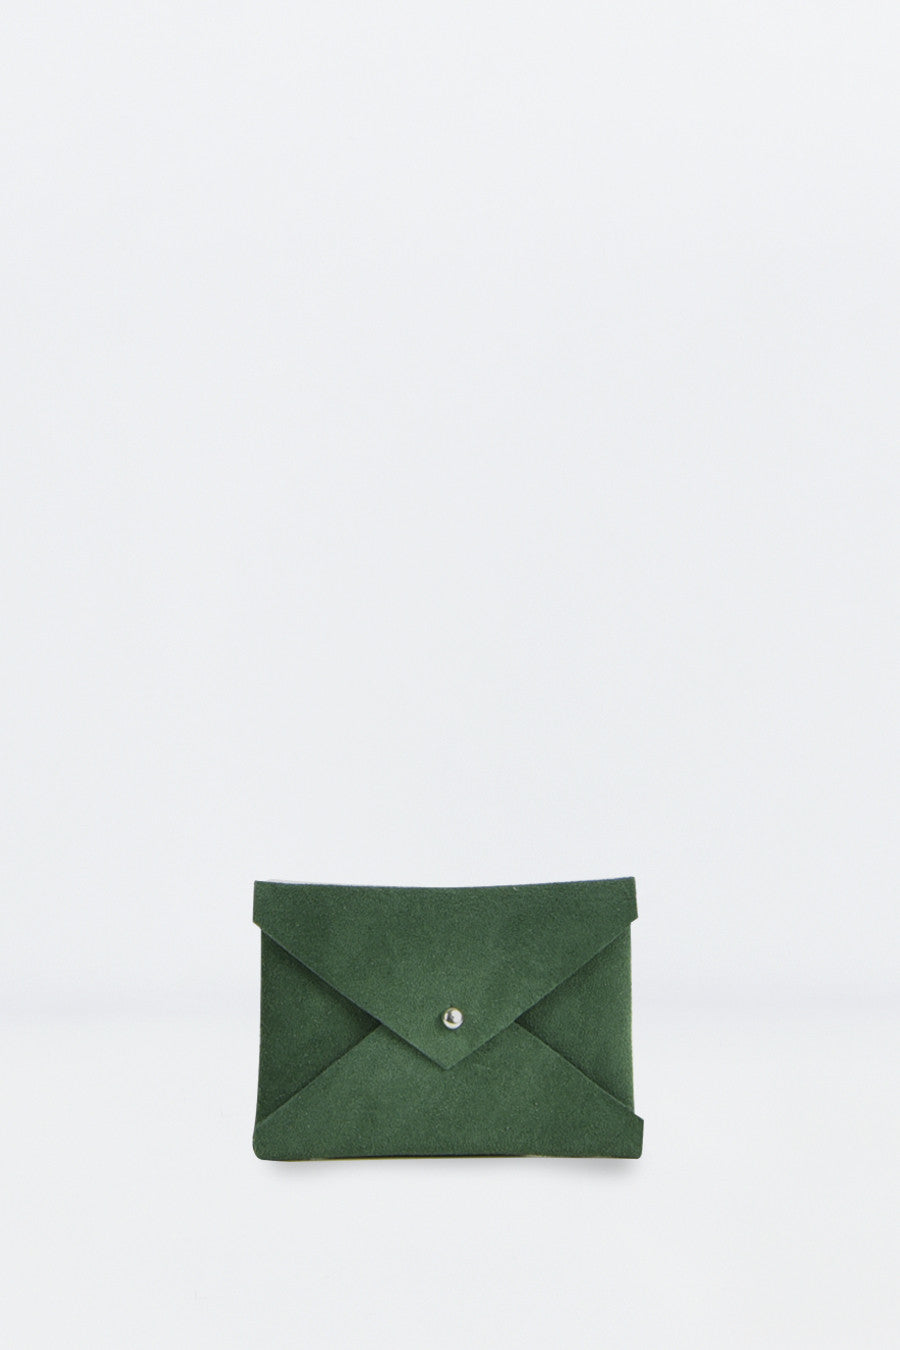 Moss Green Envelope Purse